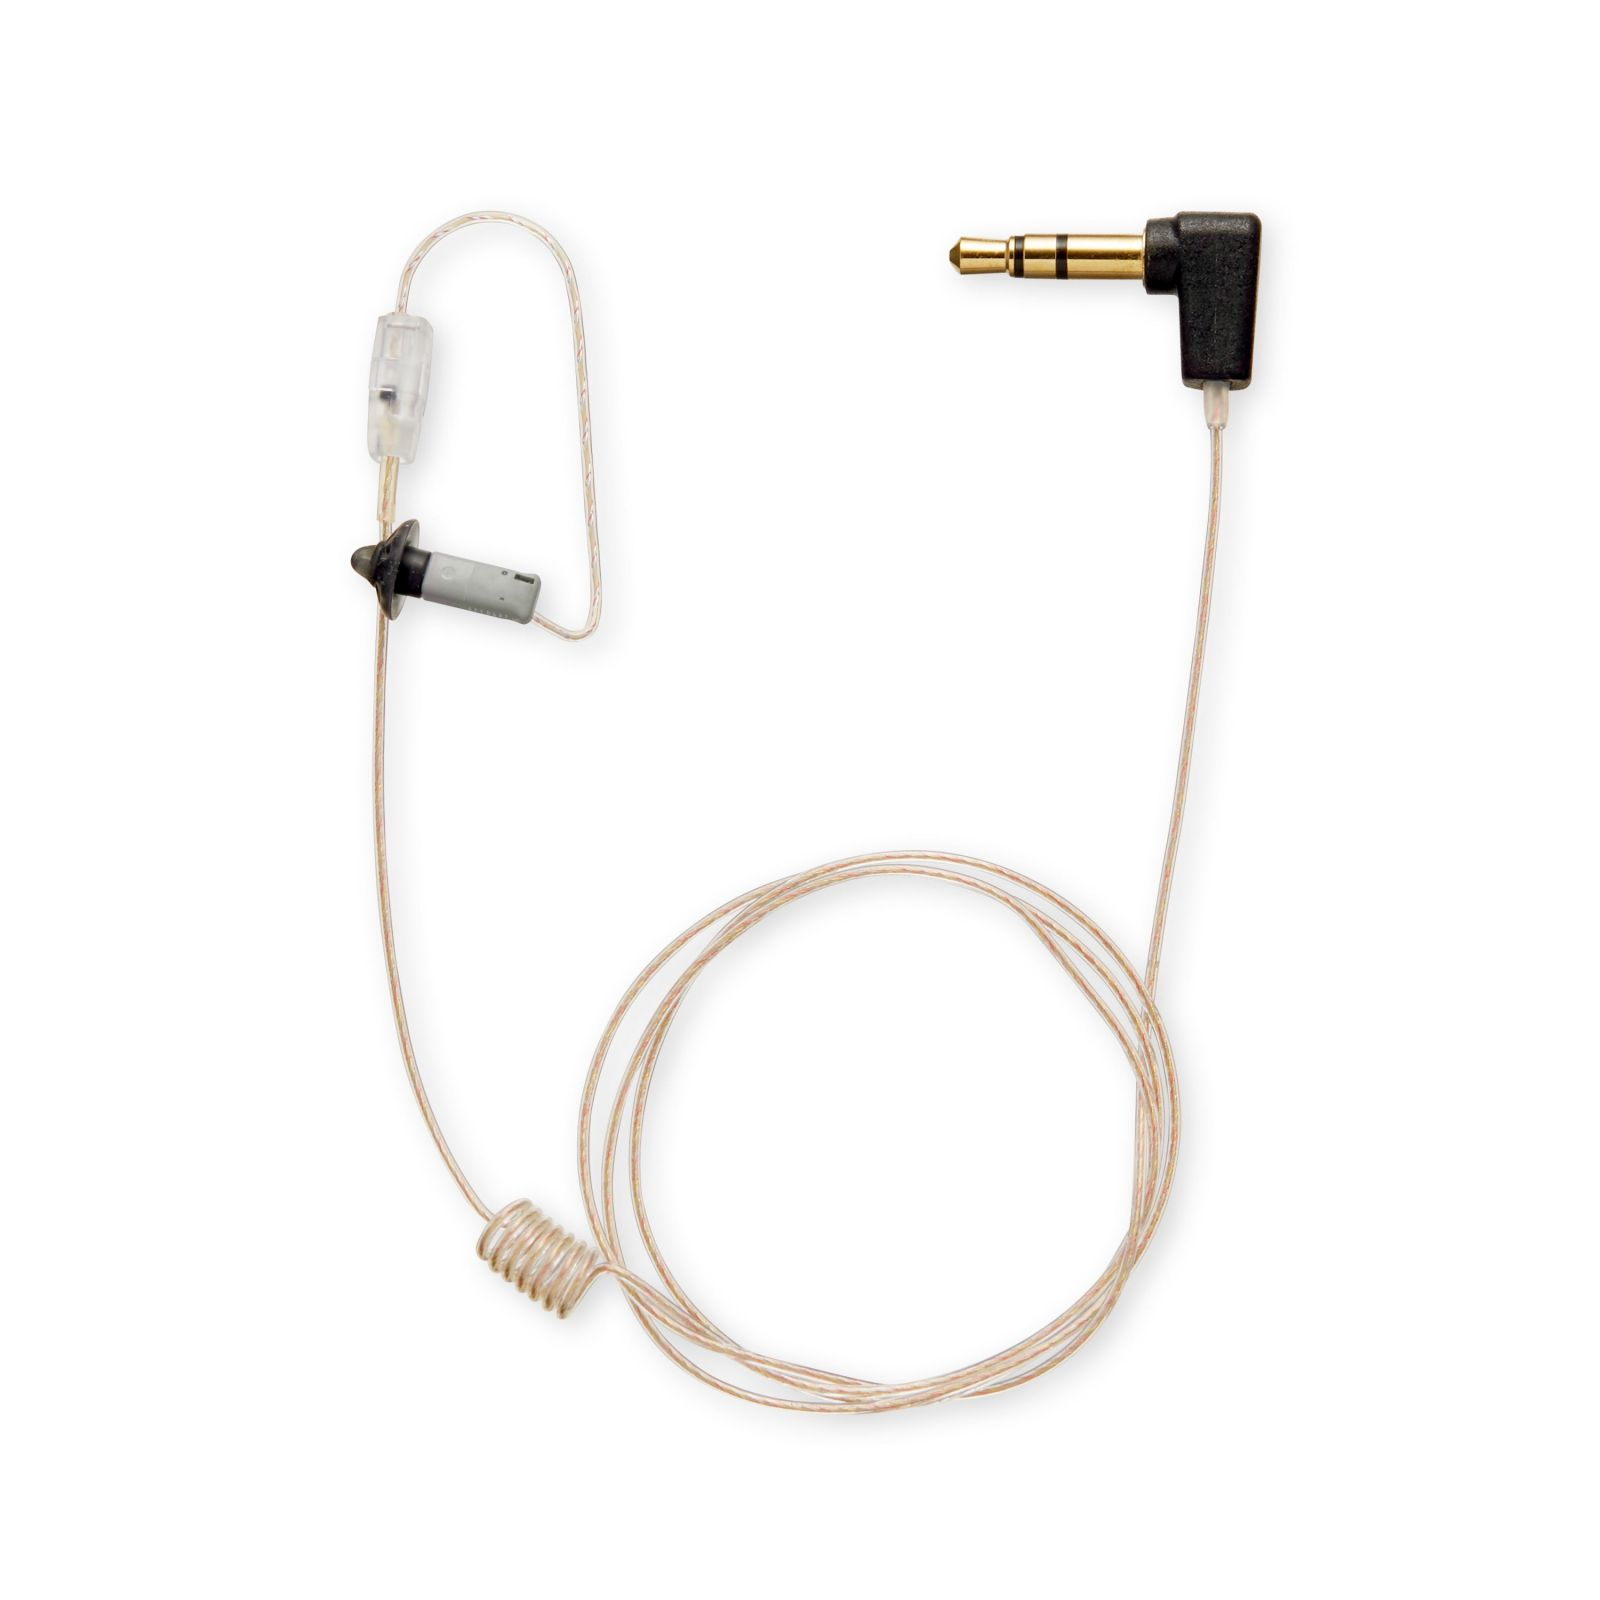 N-EAR 360 EARPIECE